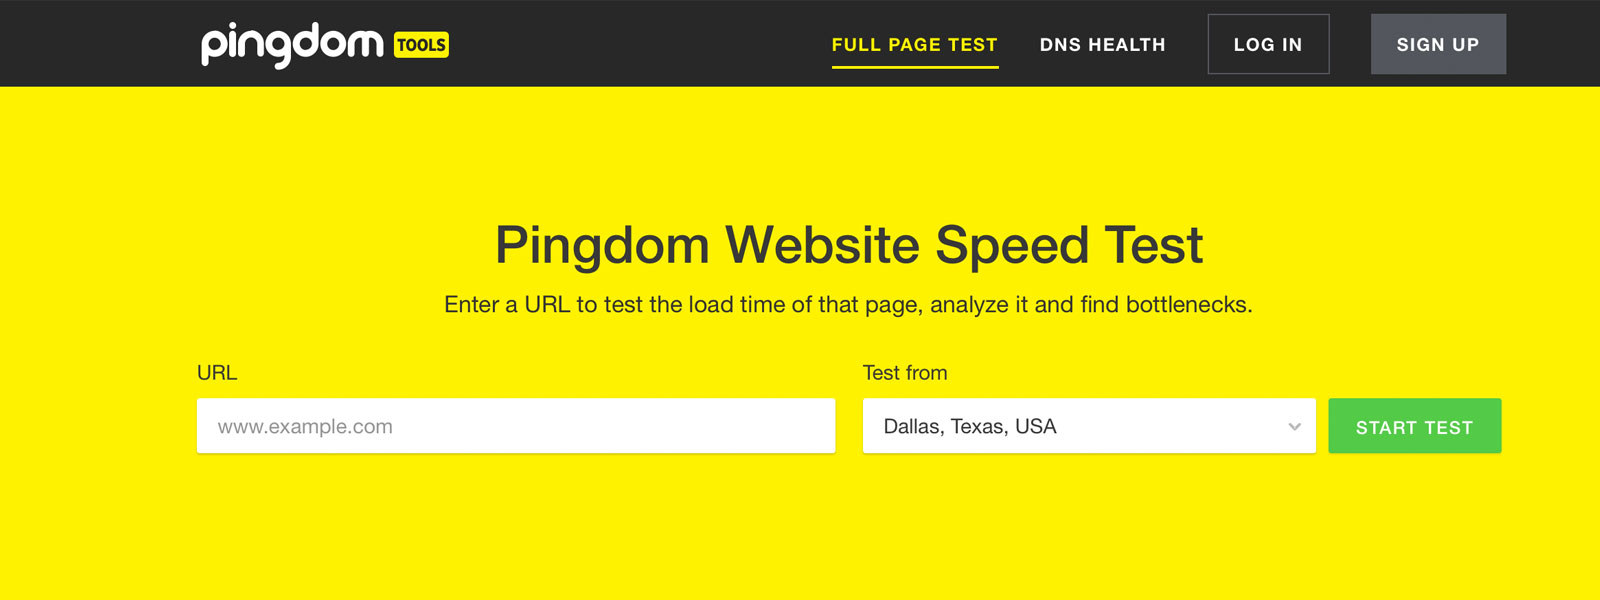 website speed testing services in nigeria